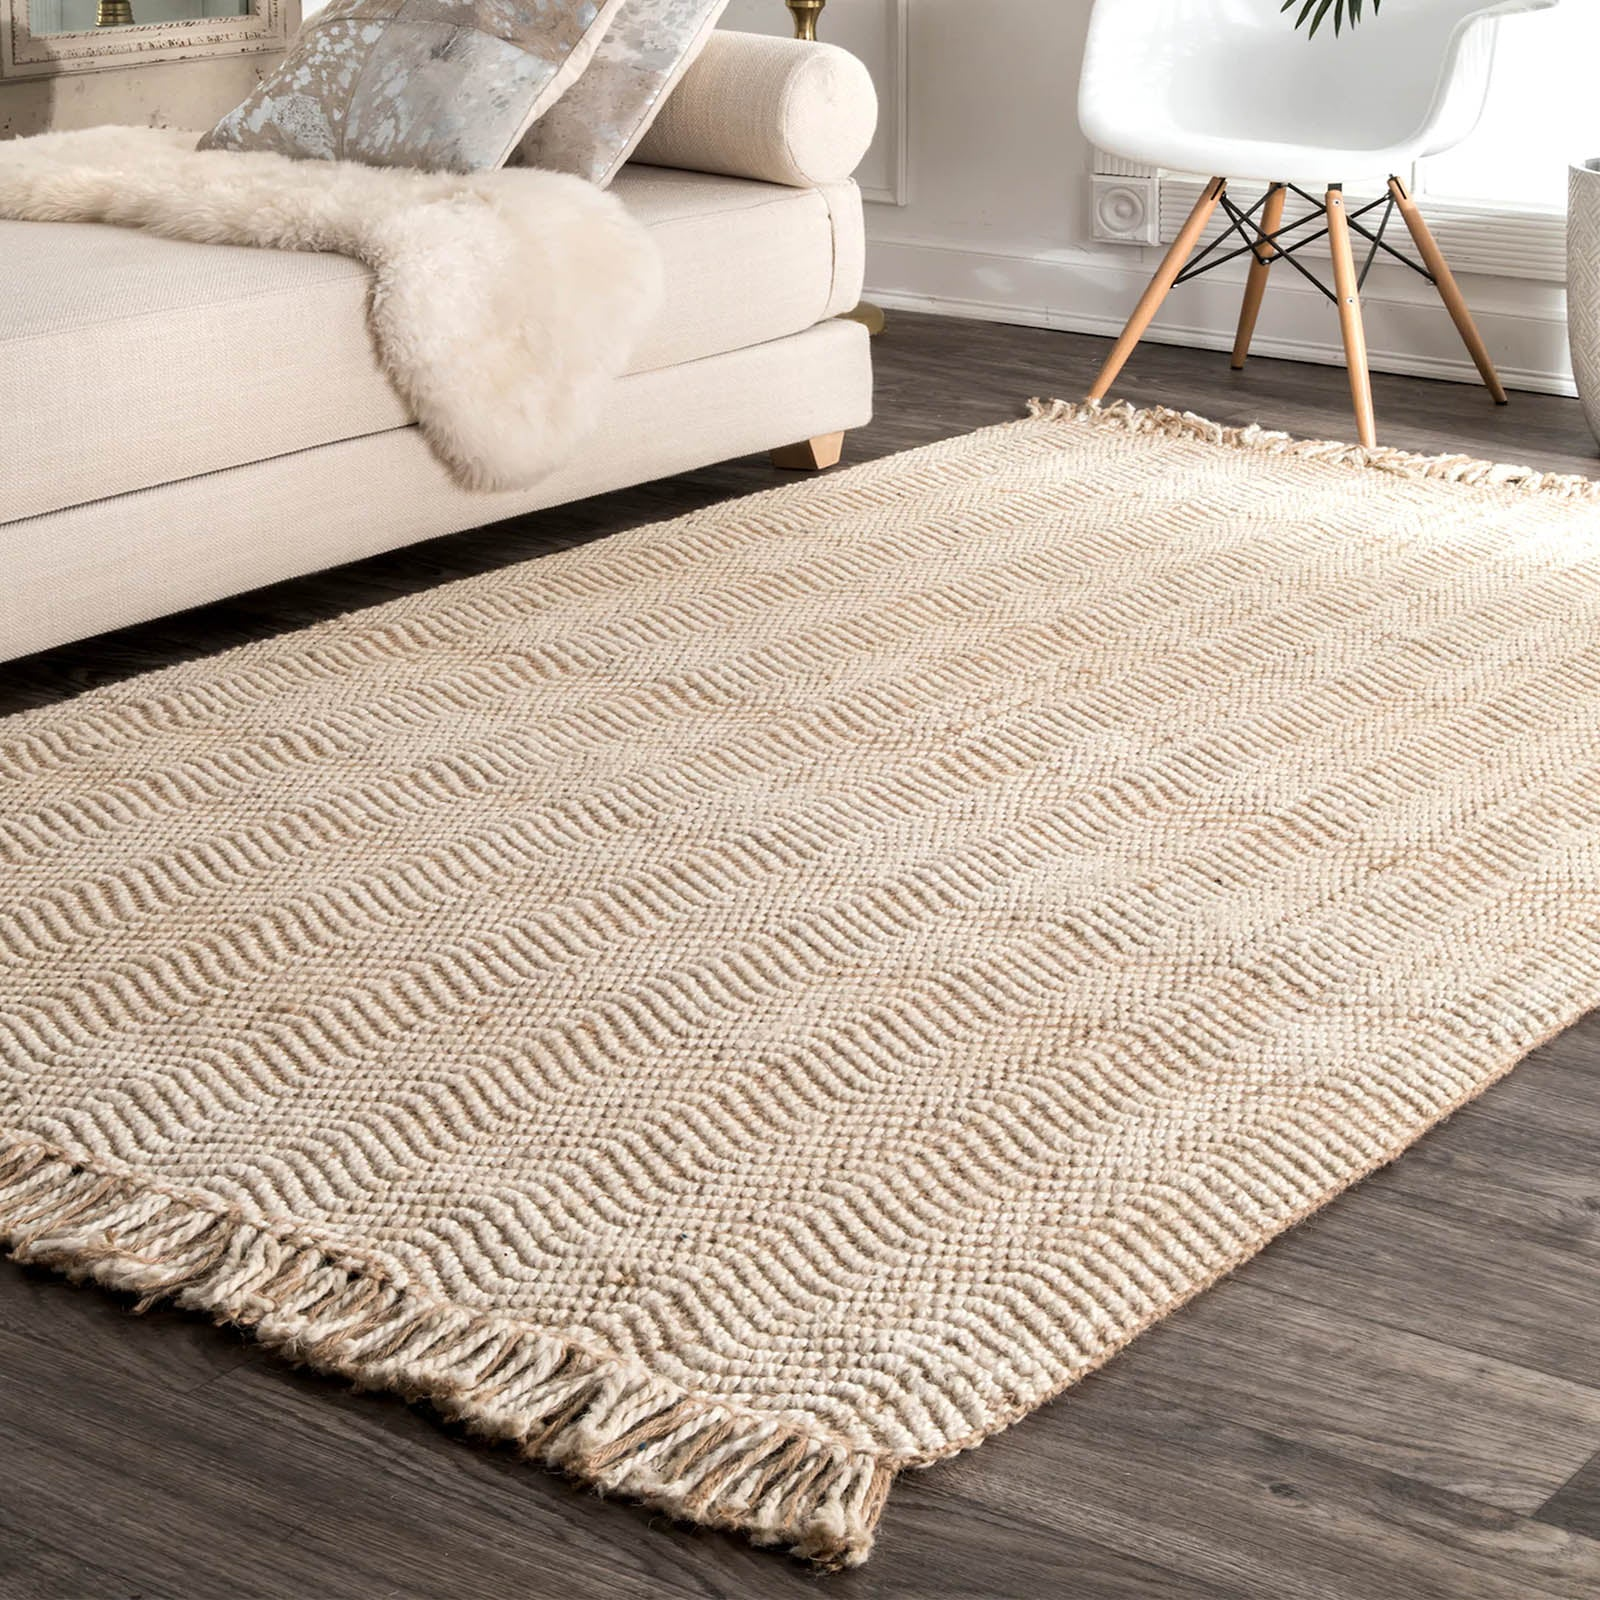 300X200 cm Braided handmade Jute Rug JH-2340-XL -  300X200 سم سجادة من الجوت مضفر يدويًا - Shop Online Furniture and Home Decor Store in Dubai, UAE at ebarza